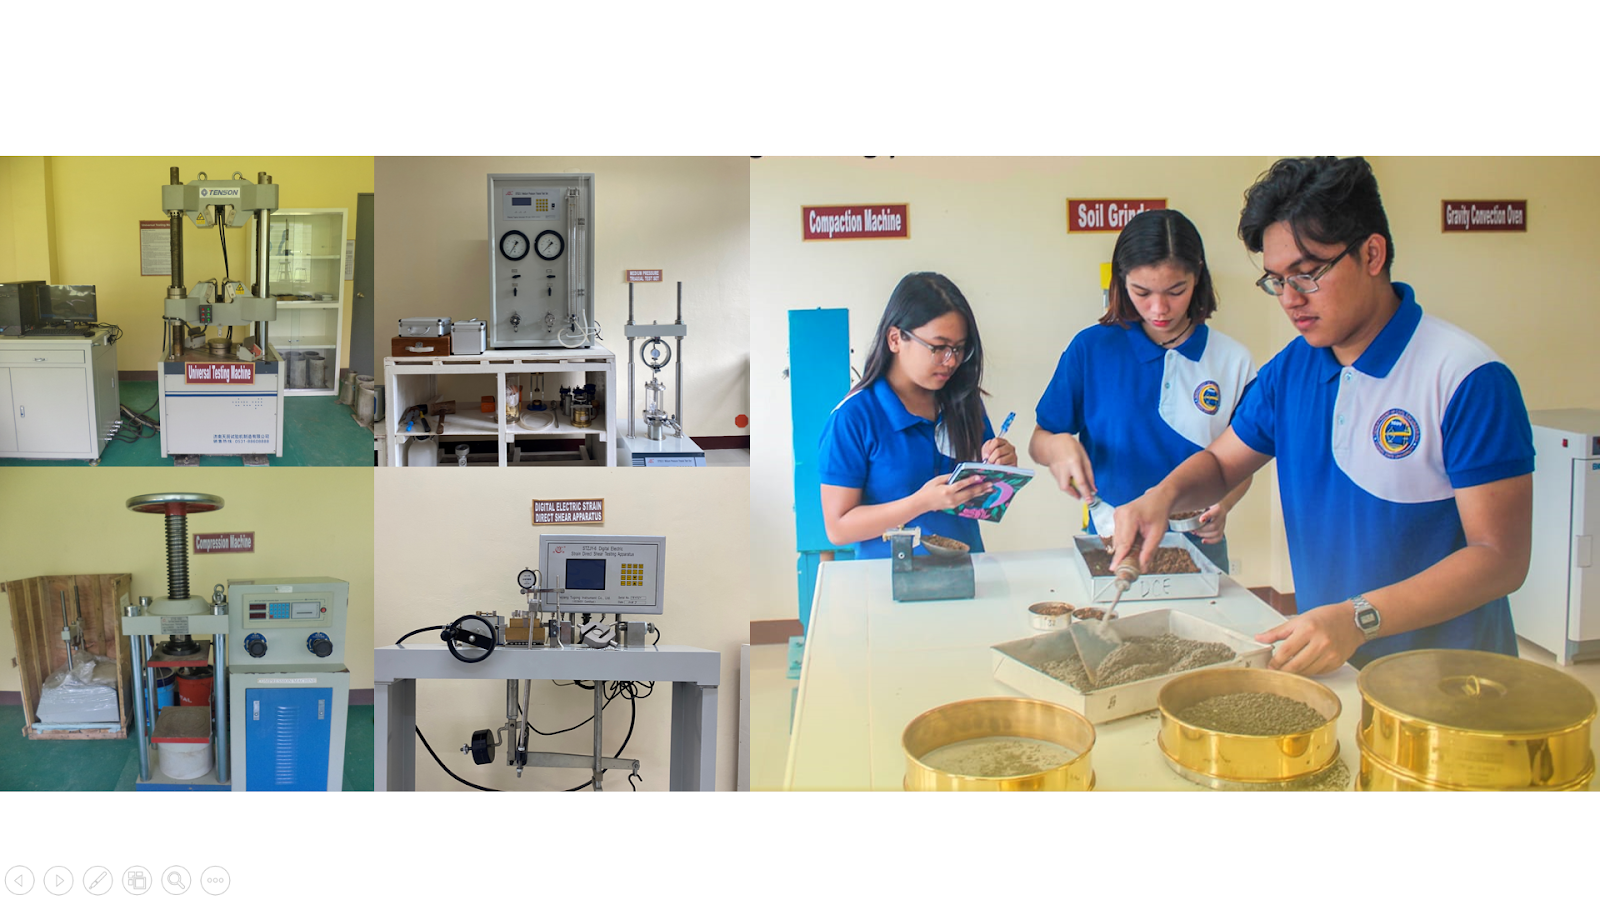 AT GLANCE. Offers Well-Equipped Laboratory Facilities and Equipment